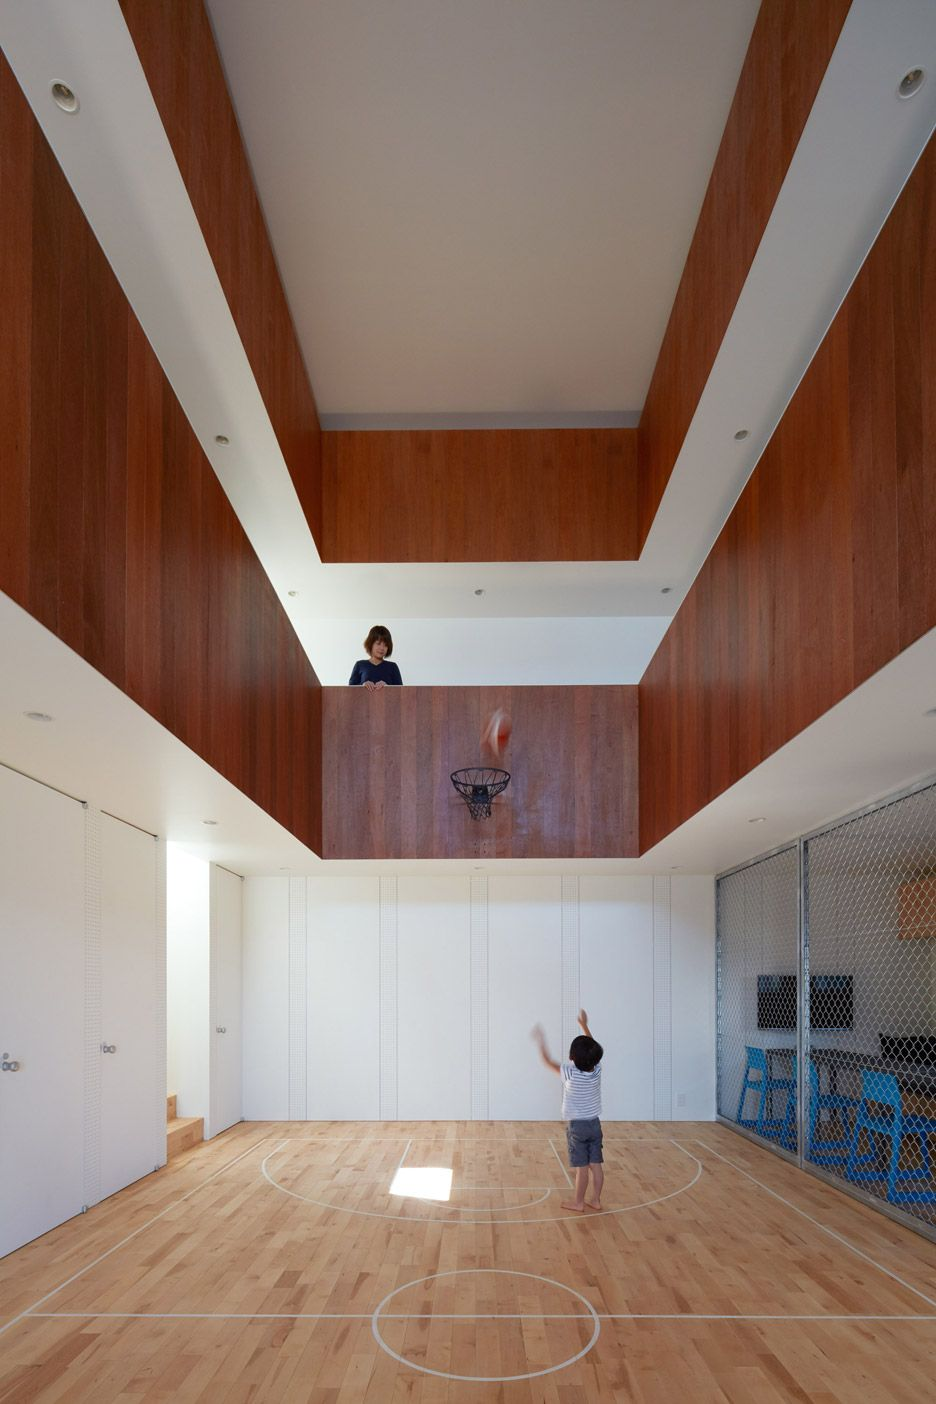 Koizumi sekkei designs house in japan with basketball for Design indoor basketball court